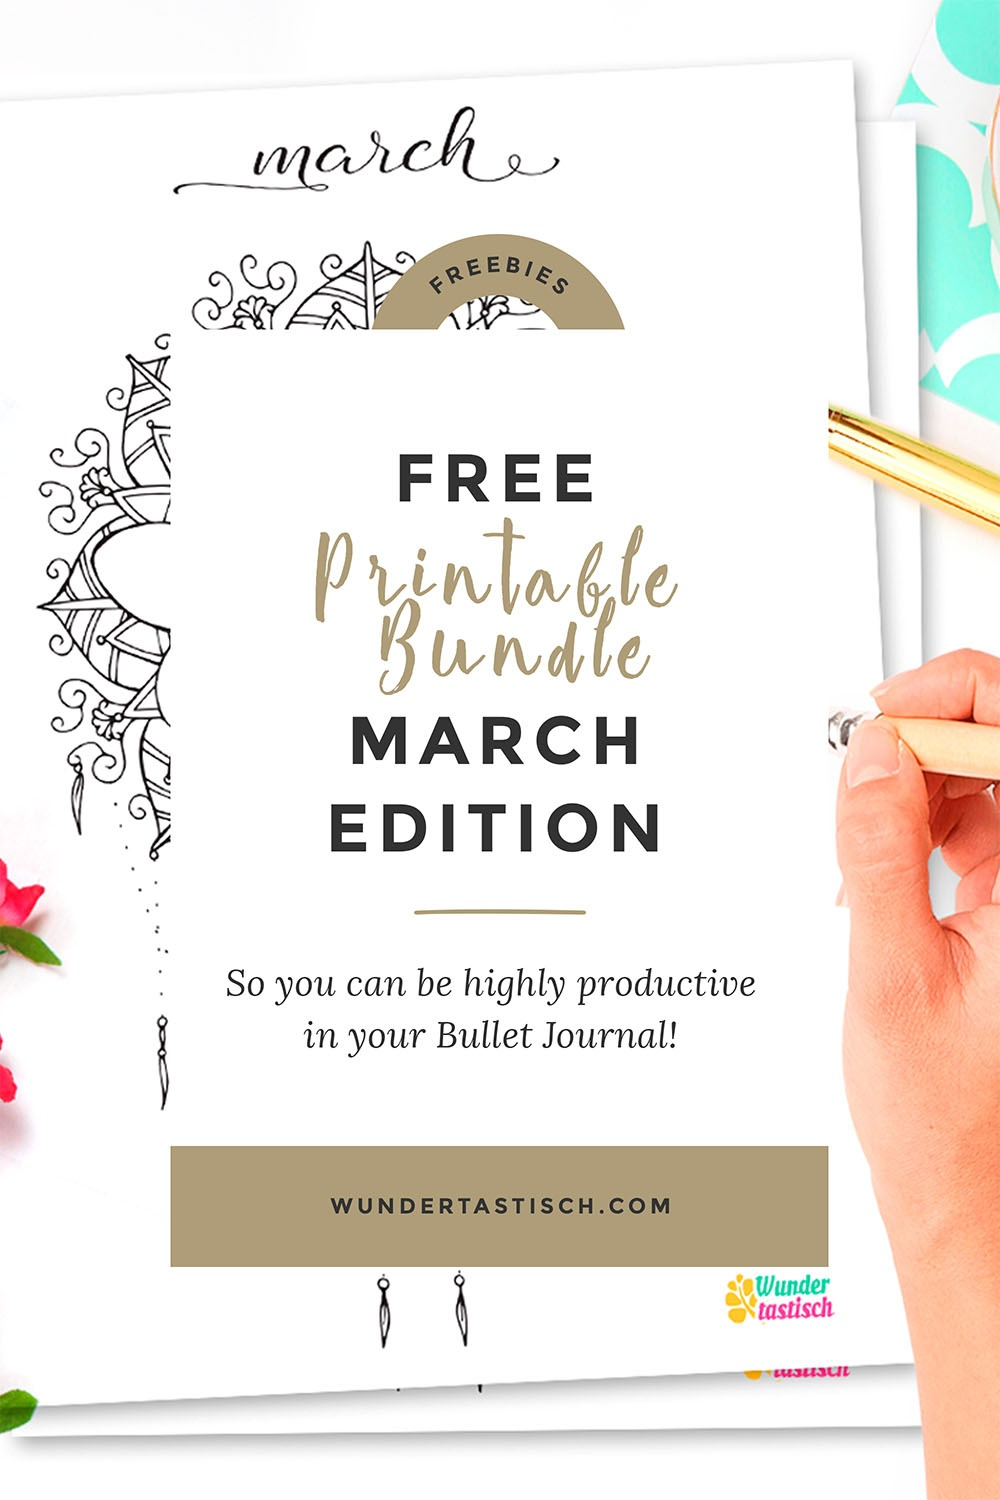 Free Bullet Journal Printables March 2017 - Wundertastisch - Free Bullet Journal Printables 2017